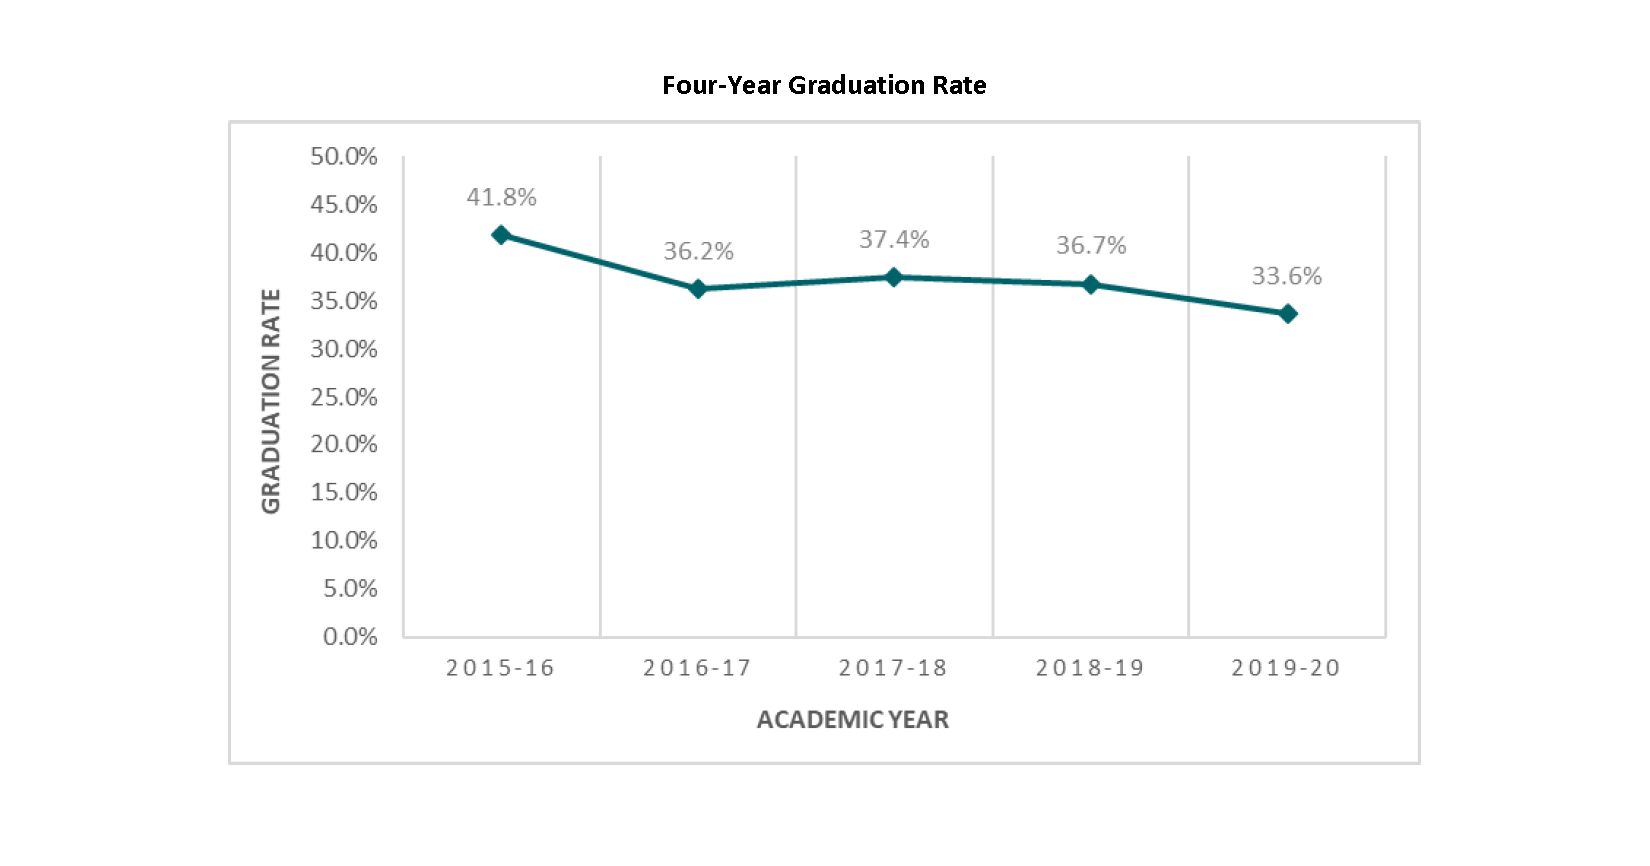 Four-Year Graduation Rate